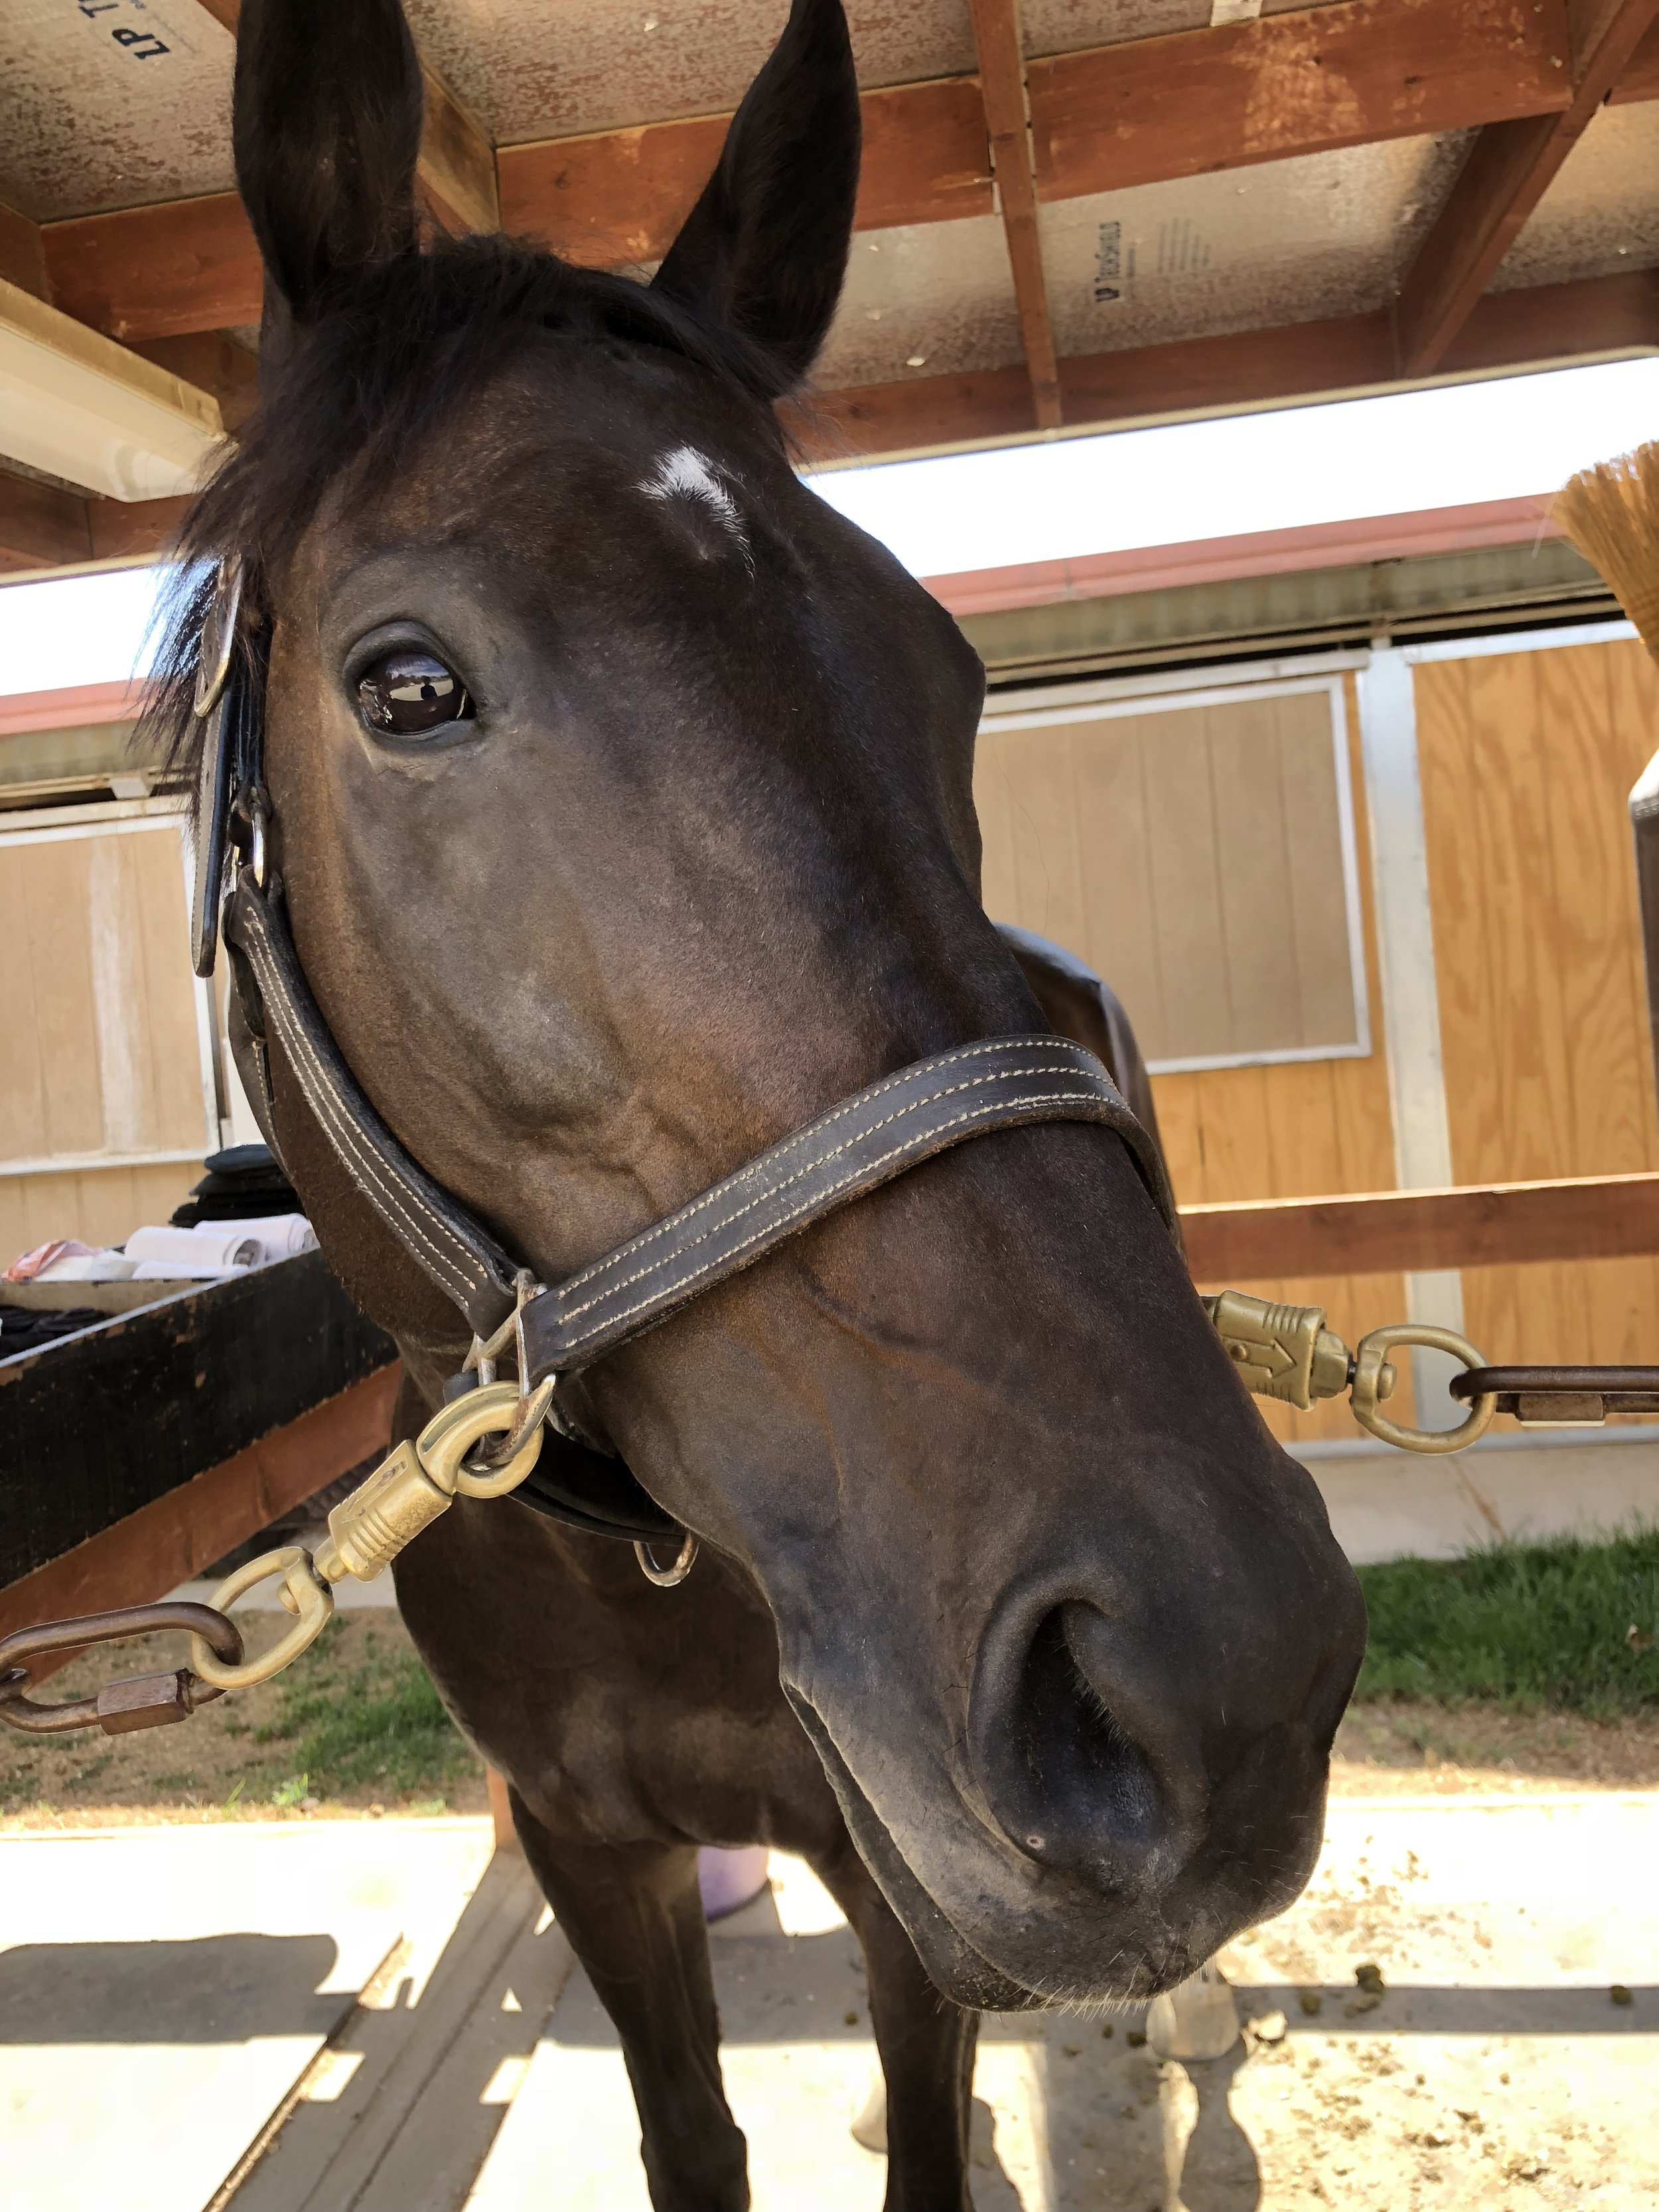 Indie - We would like to welcome Indie and Chelsea to our barn! This very special little thoroughbred mare is so much fun! She is learning so quickly. She truely wants to please and do things right! Thank you Chelsea